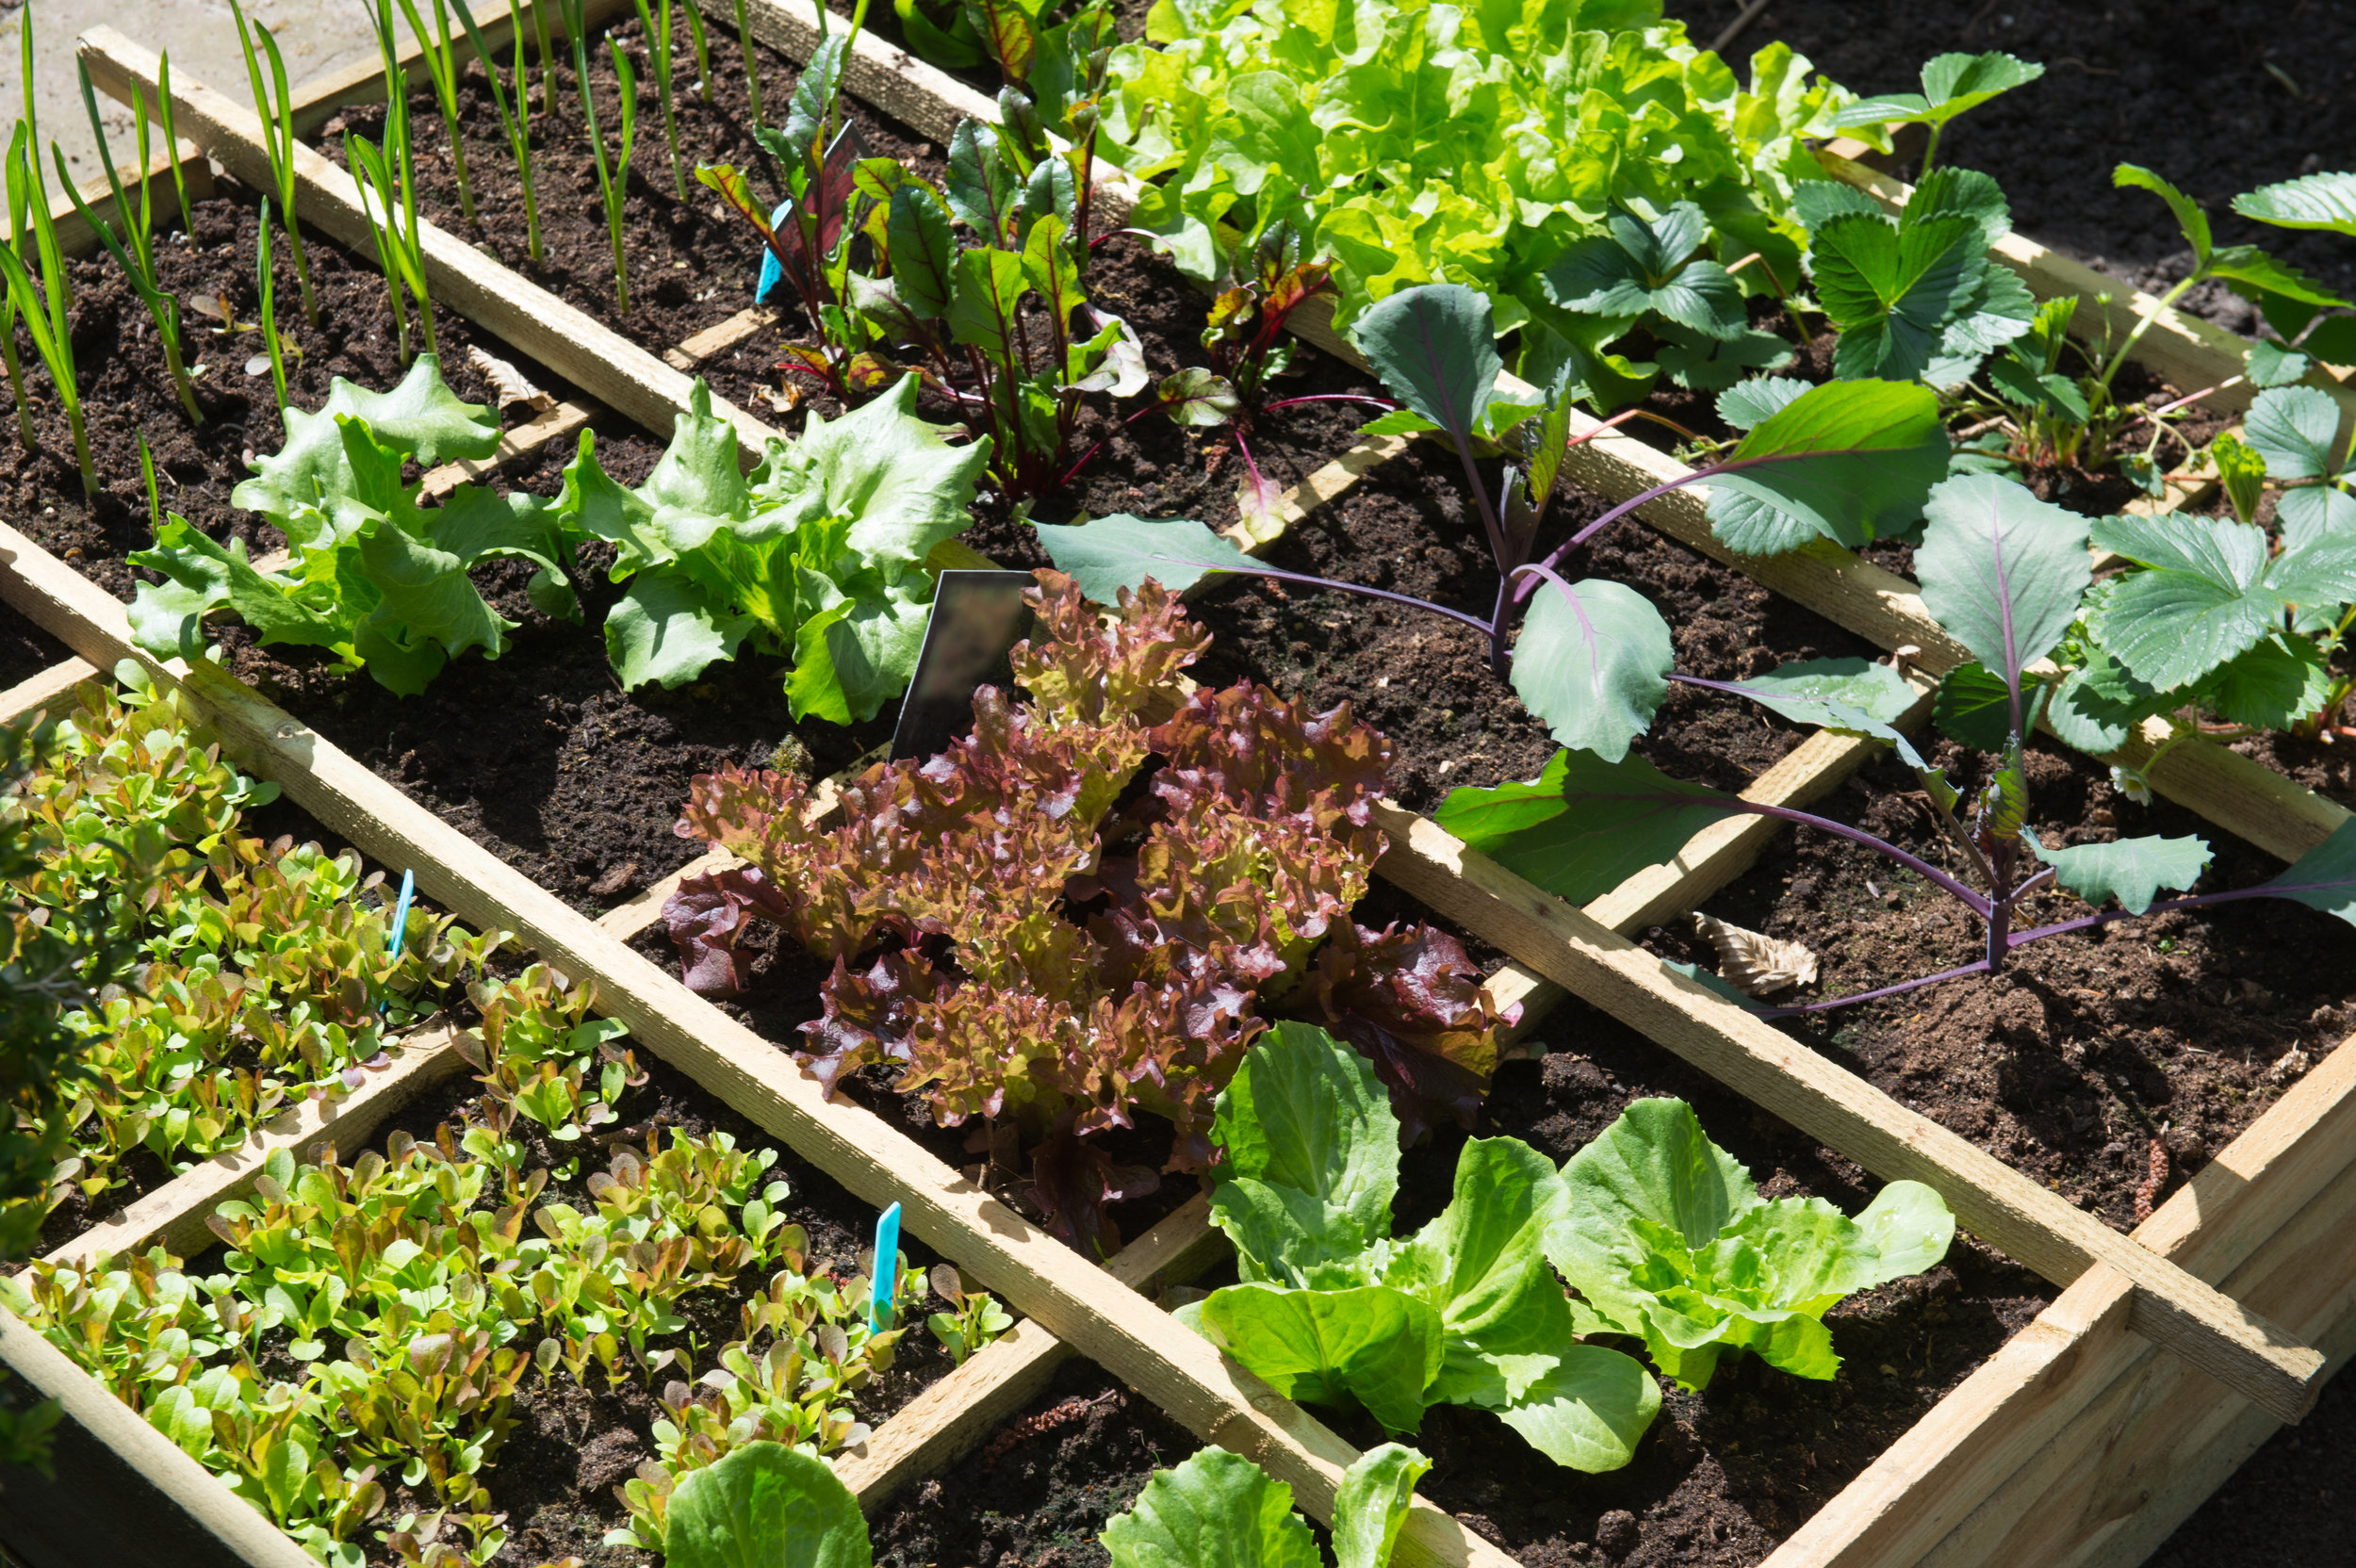 Get Your Mulches for Vegetable Gardens from Our Wholesale Nursery in the Sussex County, NJ, Area